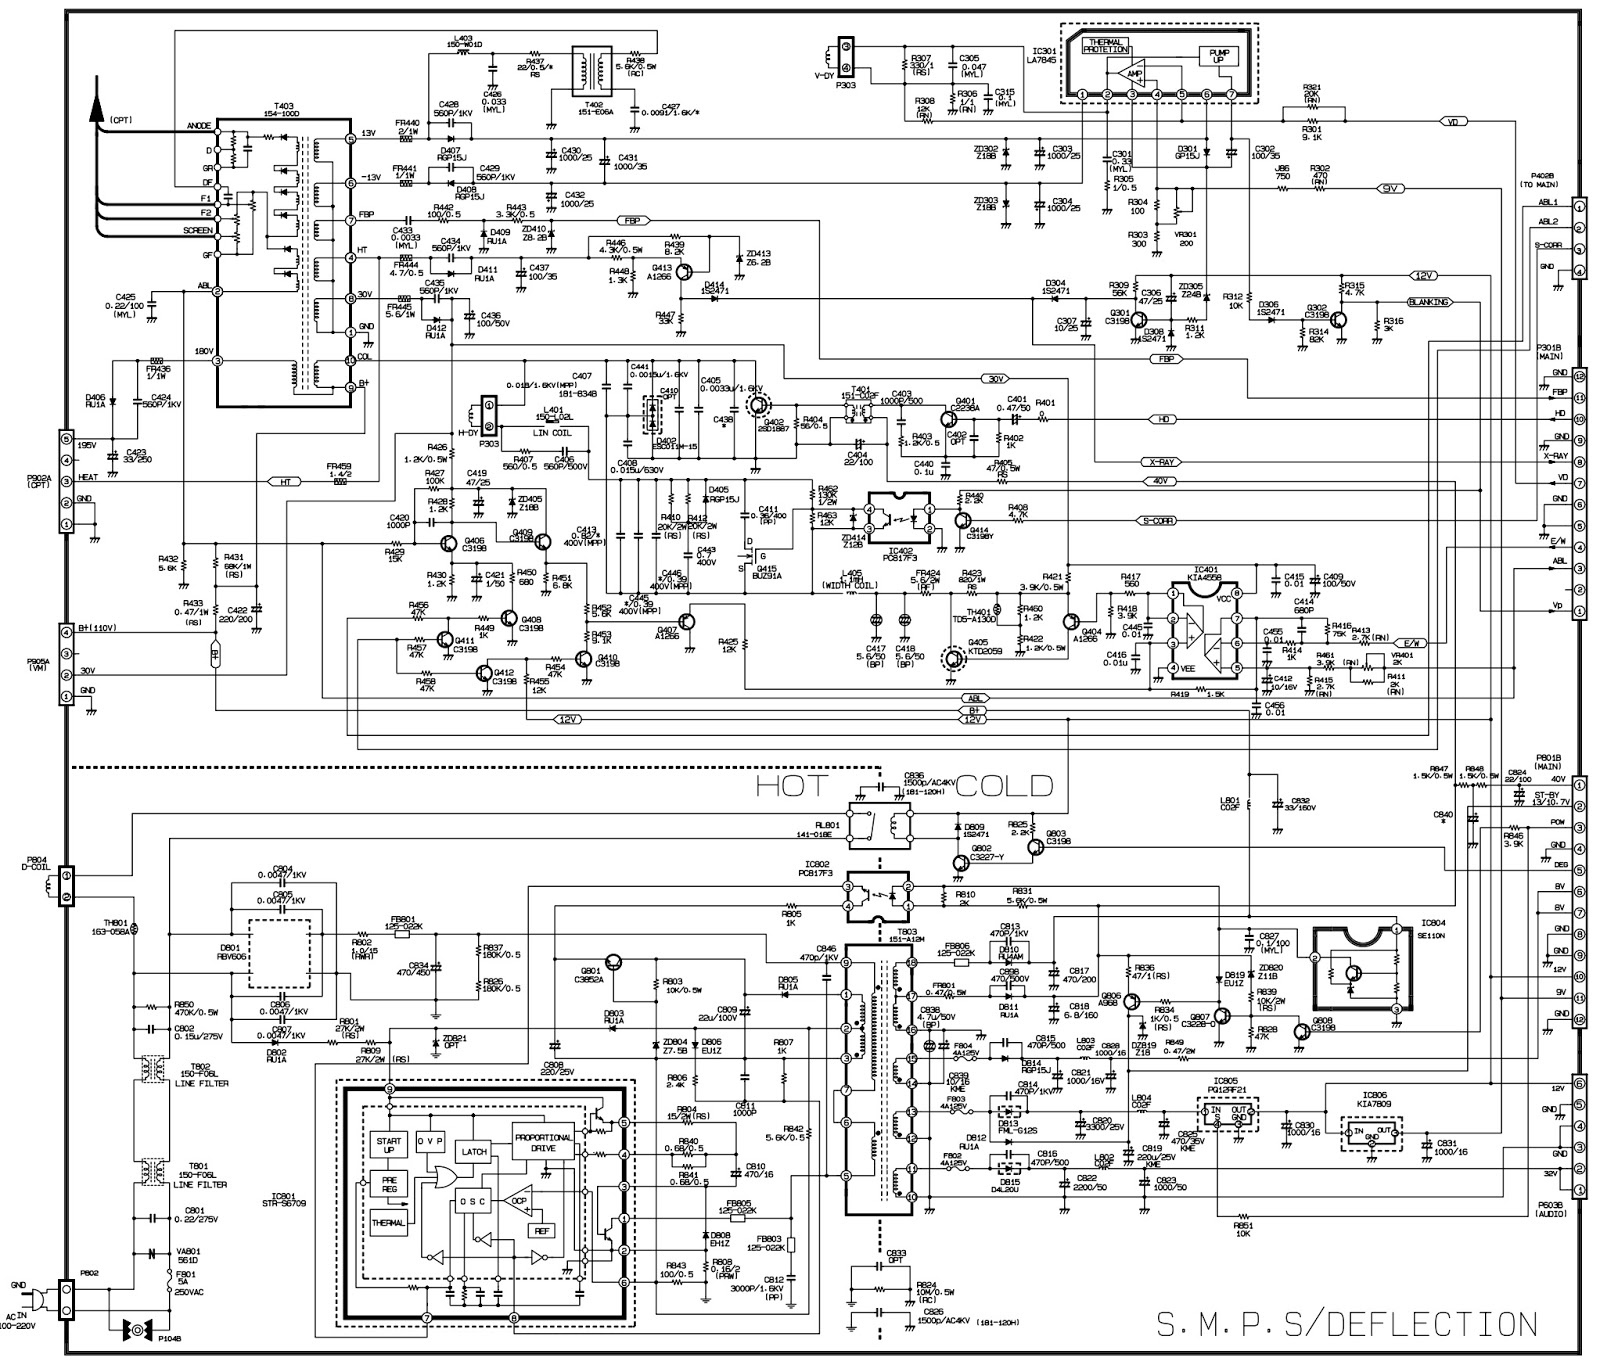 wp32a30 lg 32 inch crt tv circuit diagram [ 1600 x 1365 Pixel ]